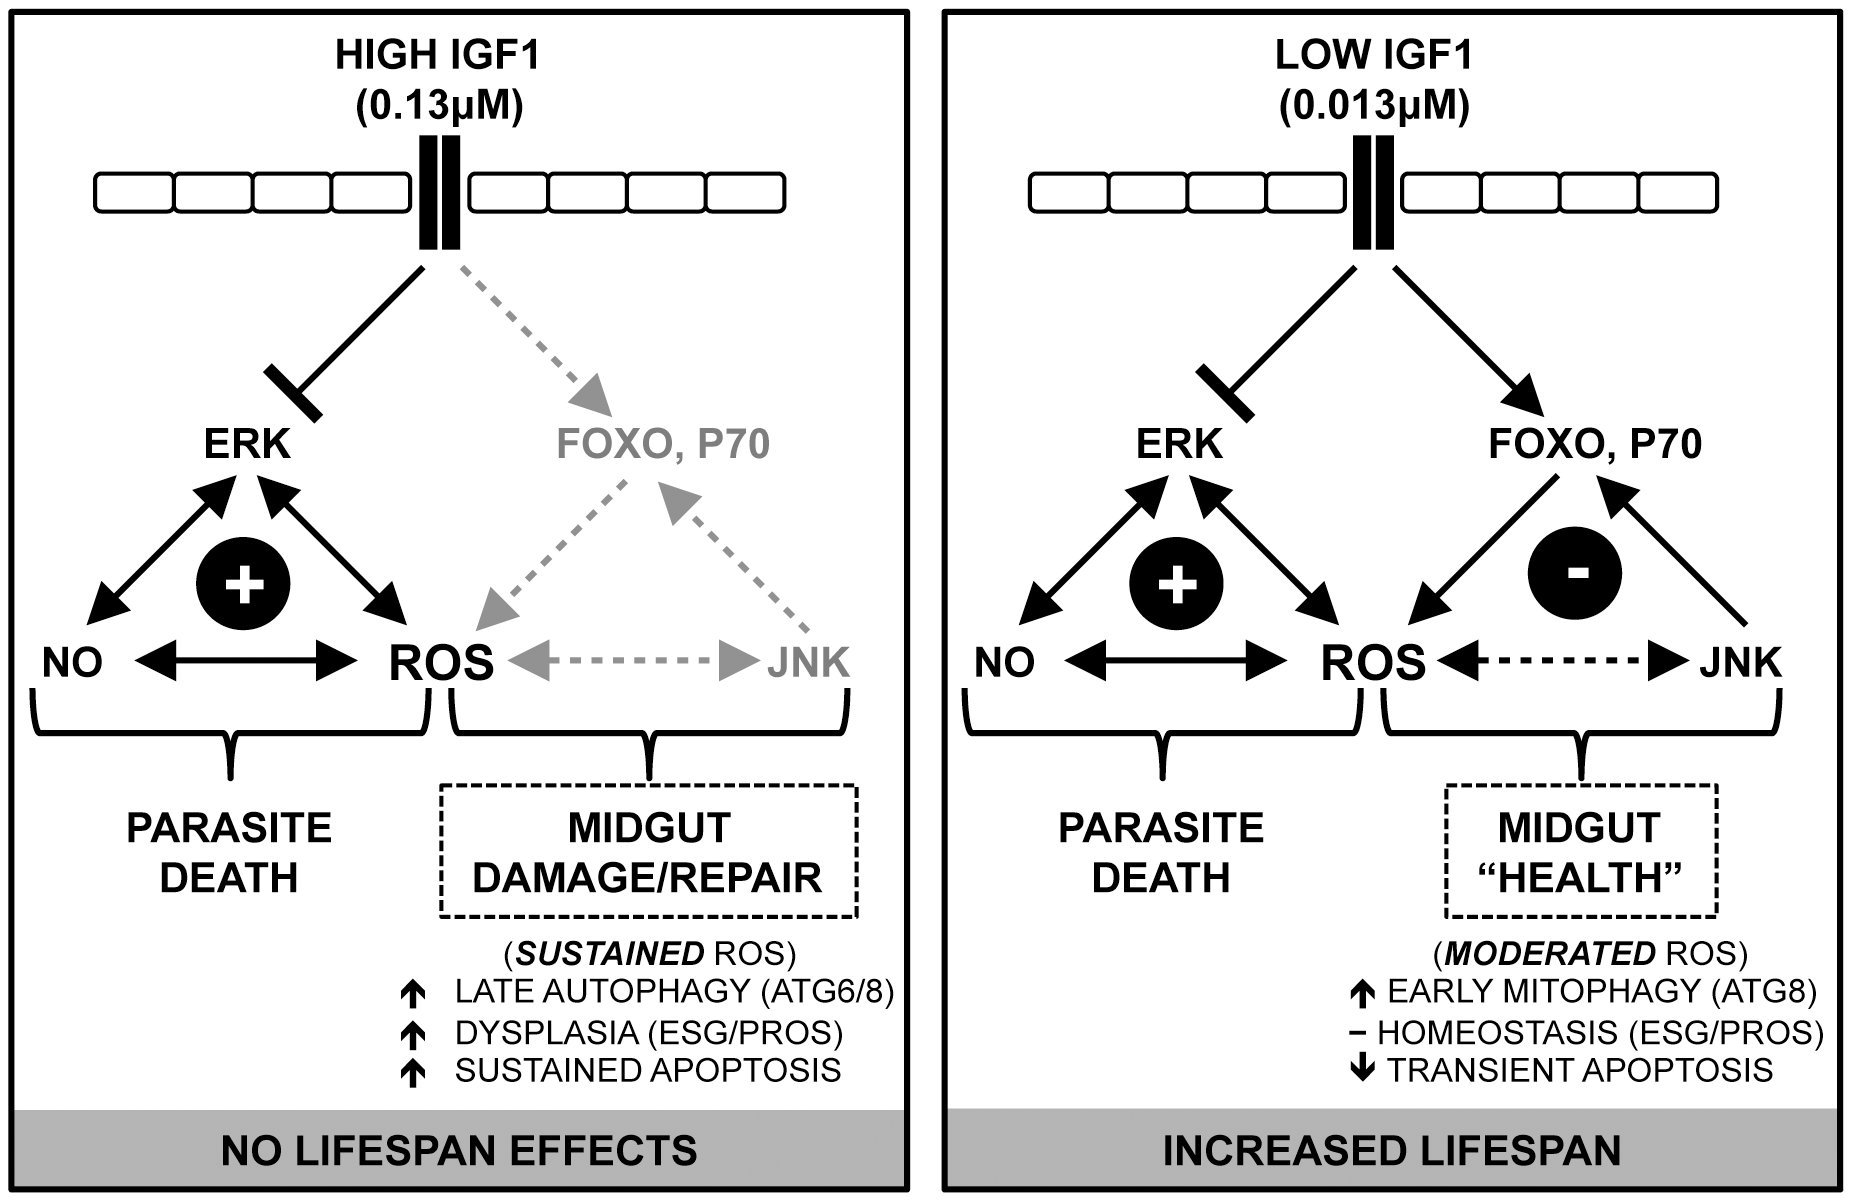 Proposed model: IGF1 fine-tunes the balance of epithelial homeostasis and midgut integrity, enhancing survival and anti-parasite resistance in <i>A. stephensi</i>.